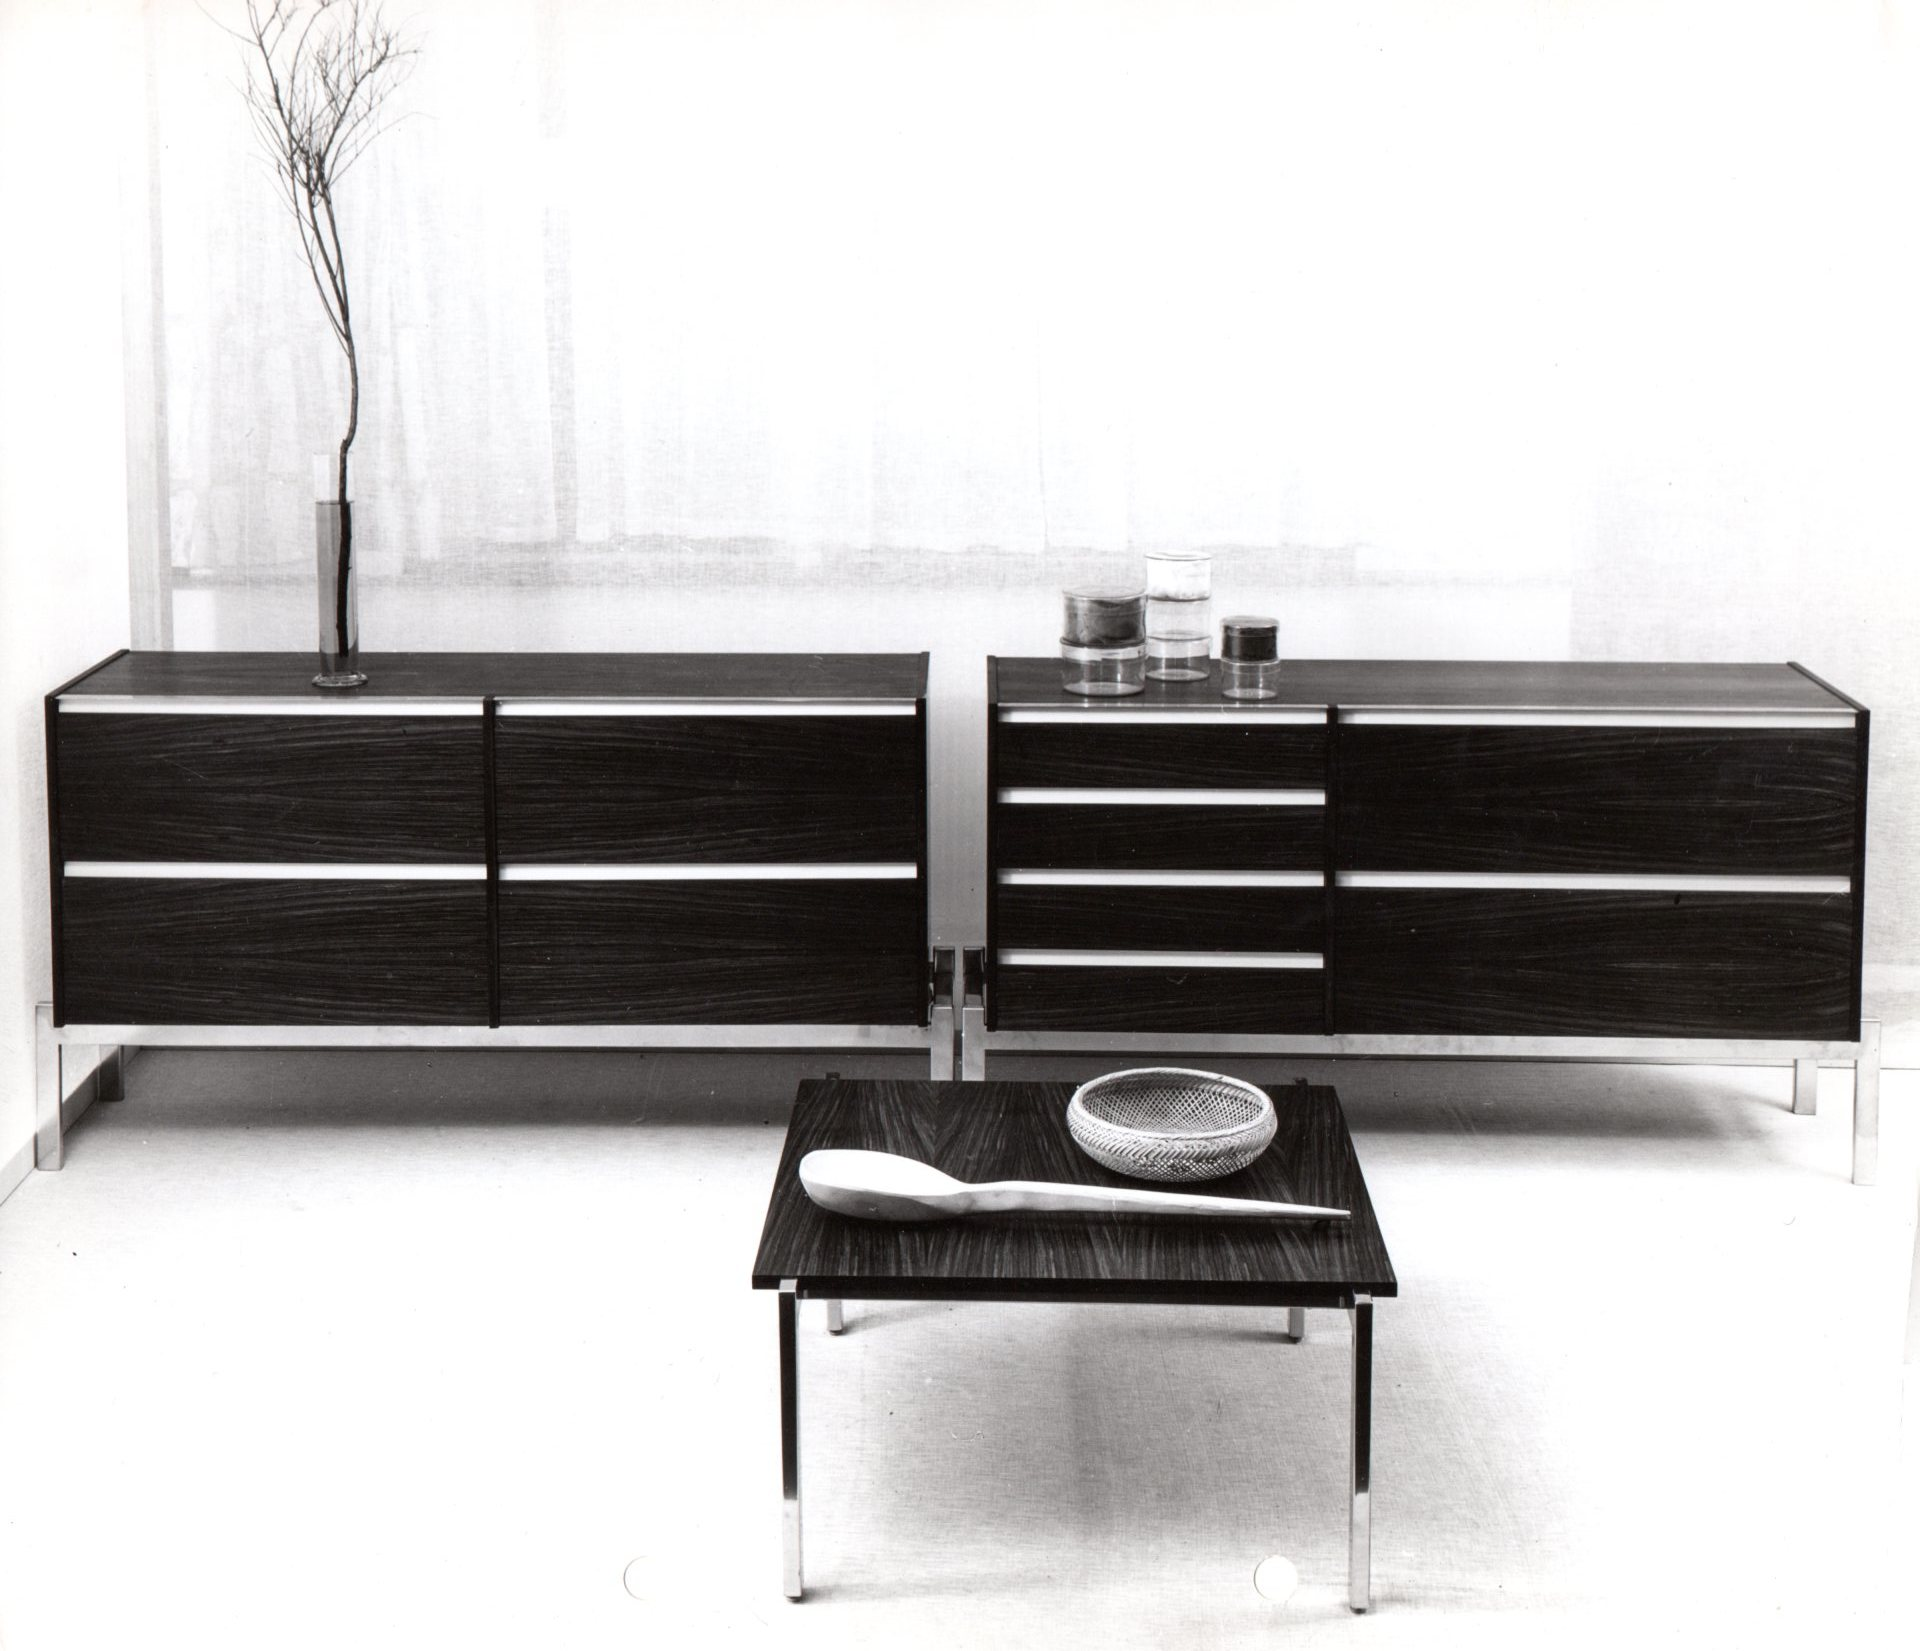 Credenzas JDL and JDK. Photo Ad Windig